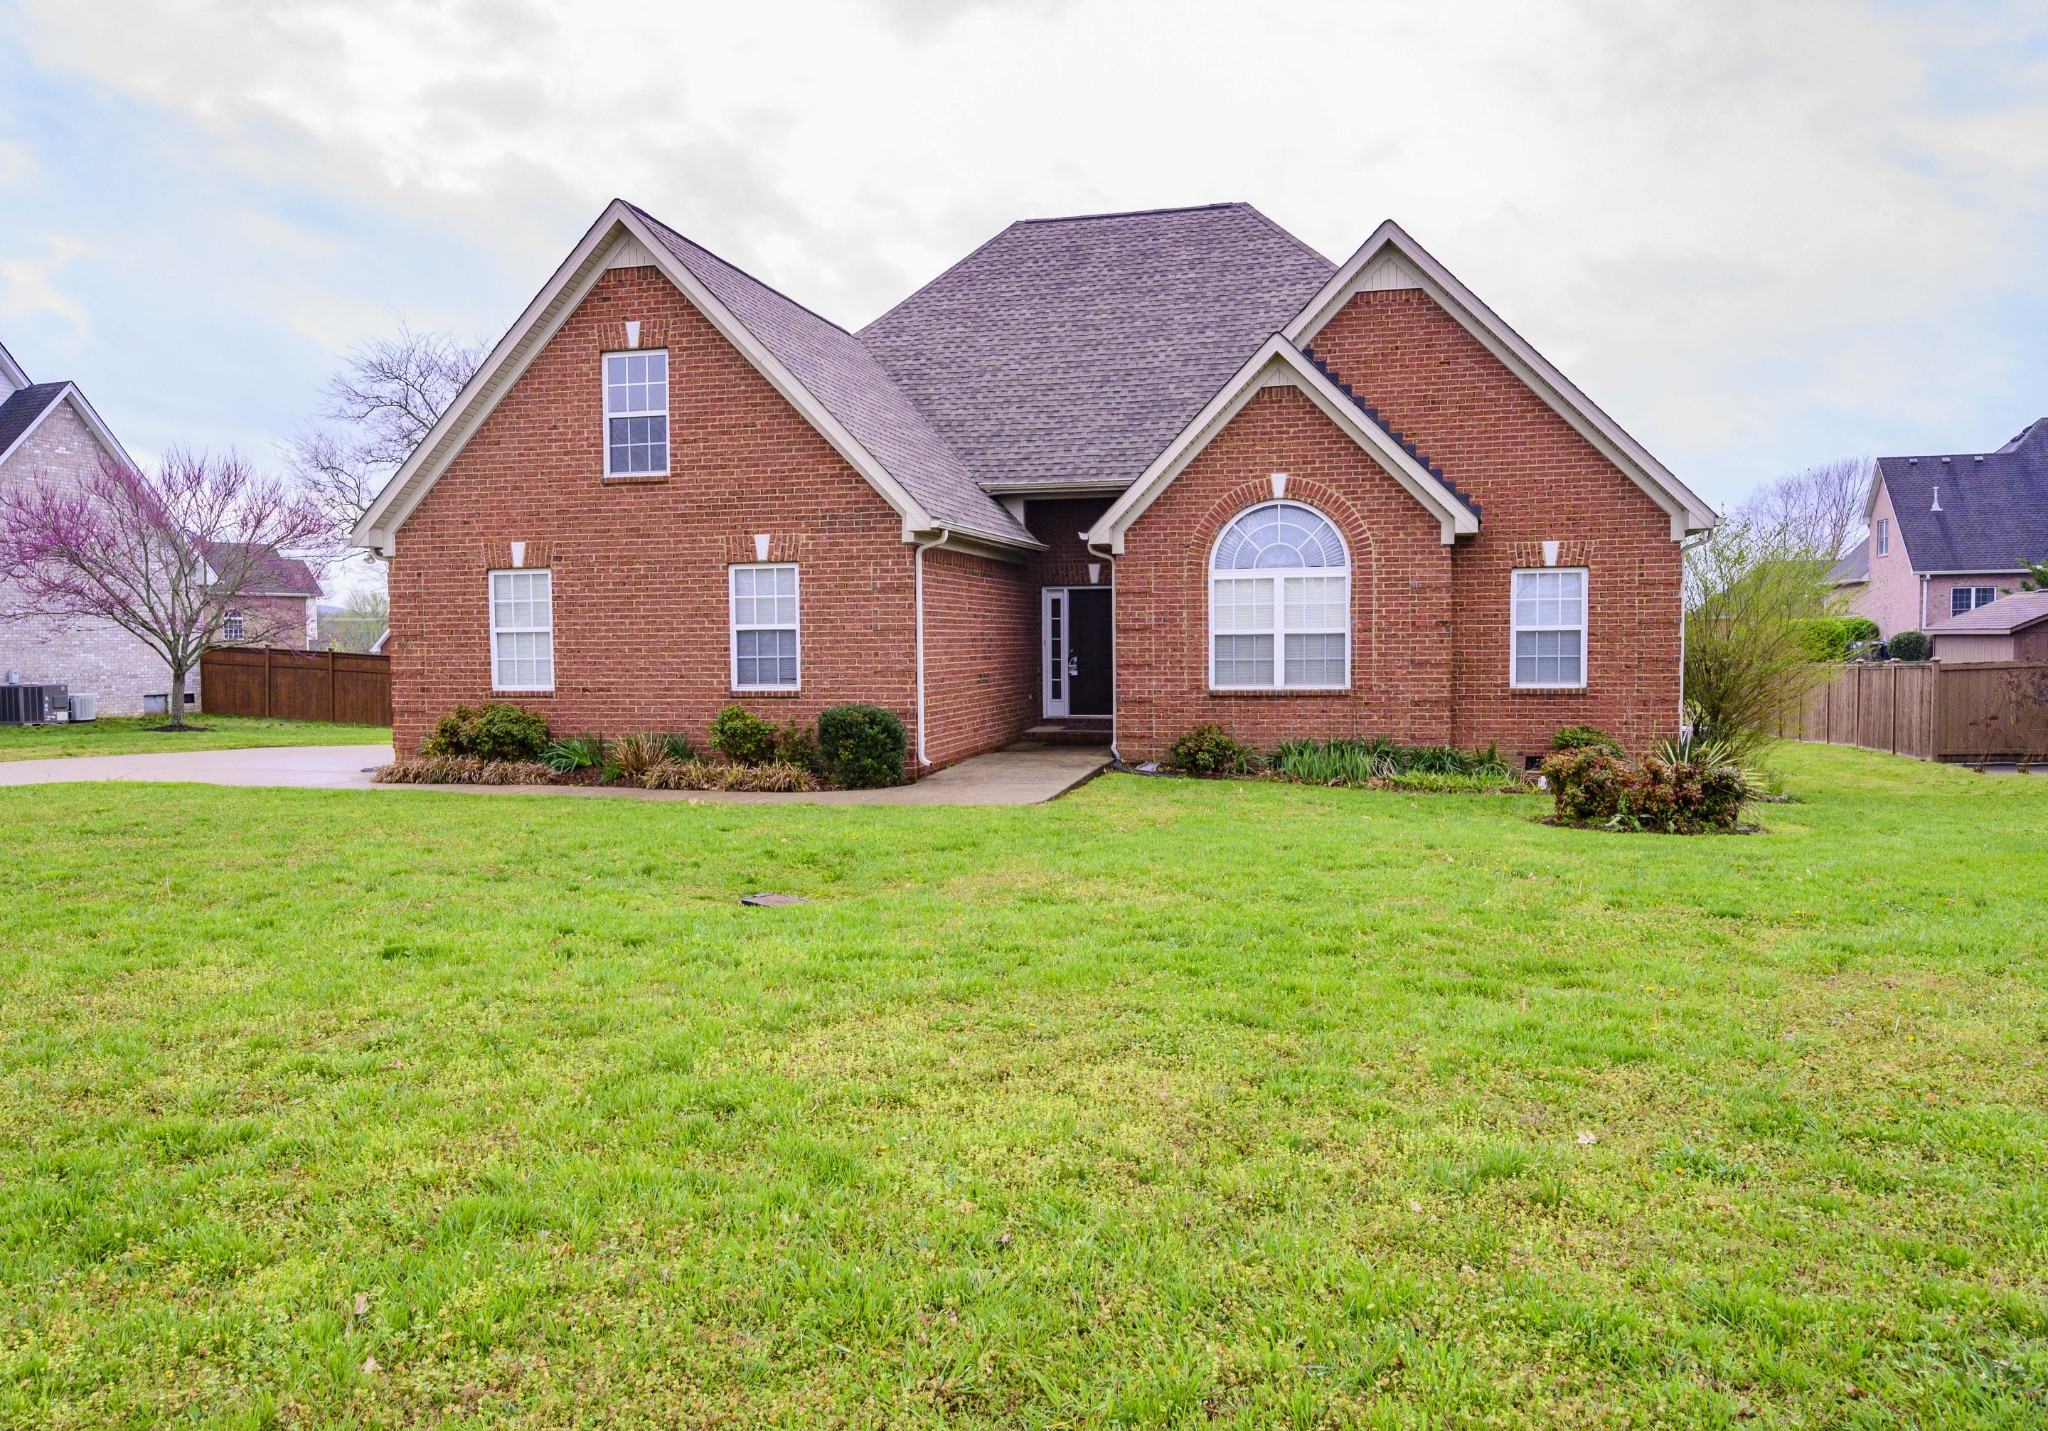 1016 Farmhouse Rd, Lascassas, TN 37085 - Lascassas, TN real estate listing